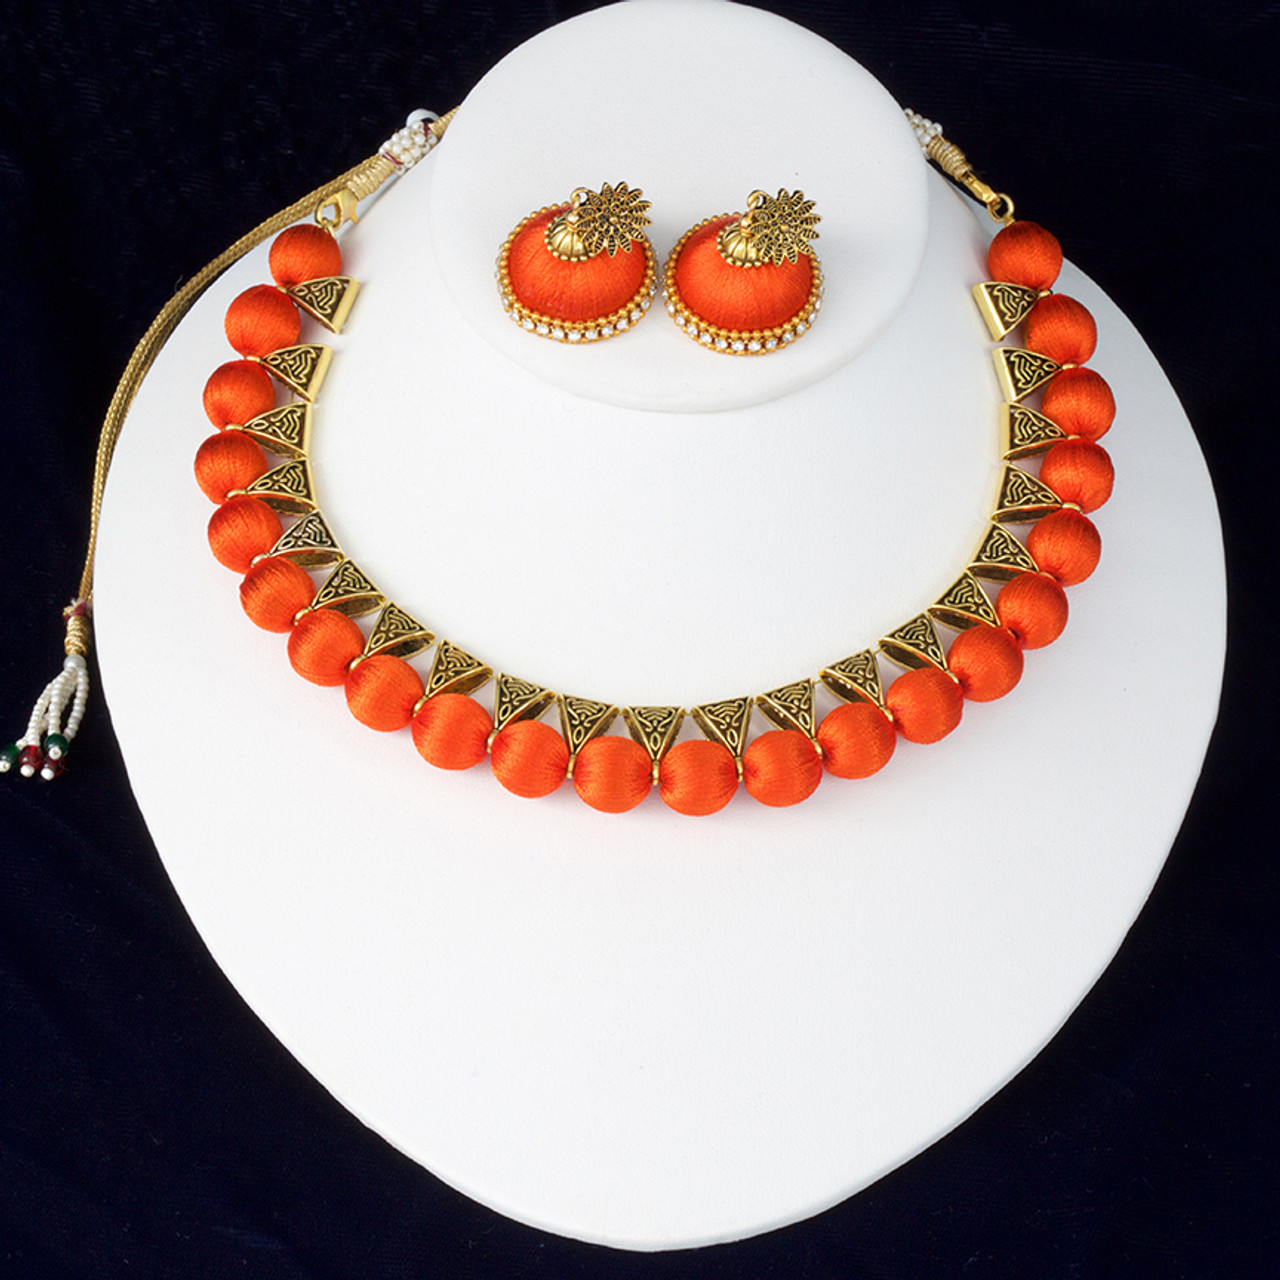 2cda9d1c3ec46 Indian Silk Thread Jewelry Set Antique Choker Necklace and Matching Jhumka  Earrings Combo in Orange Color